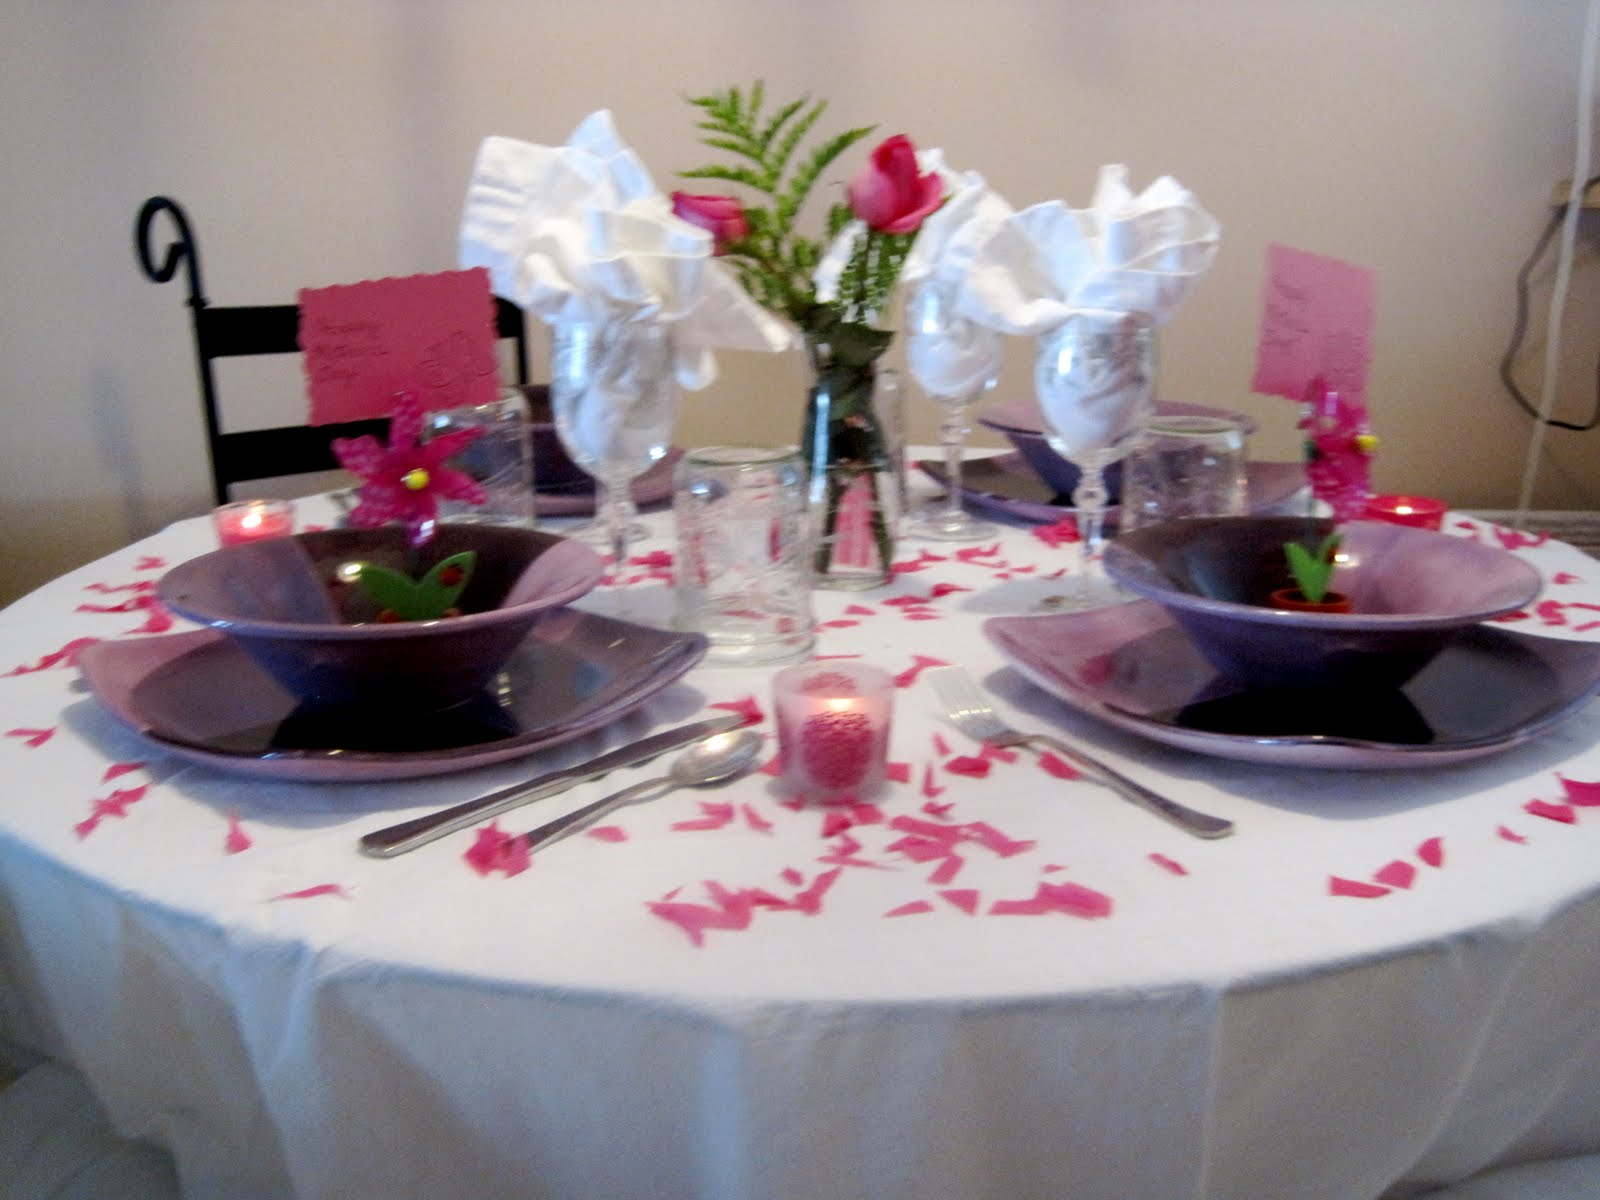 Heartland Foodie Mothers Day Brunch Part 1 Decorations